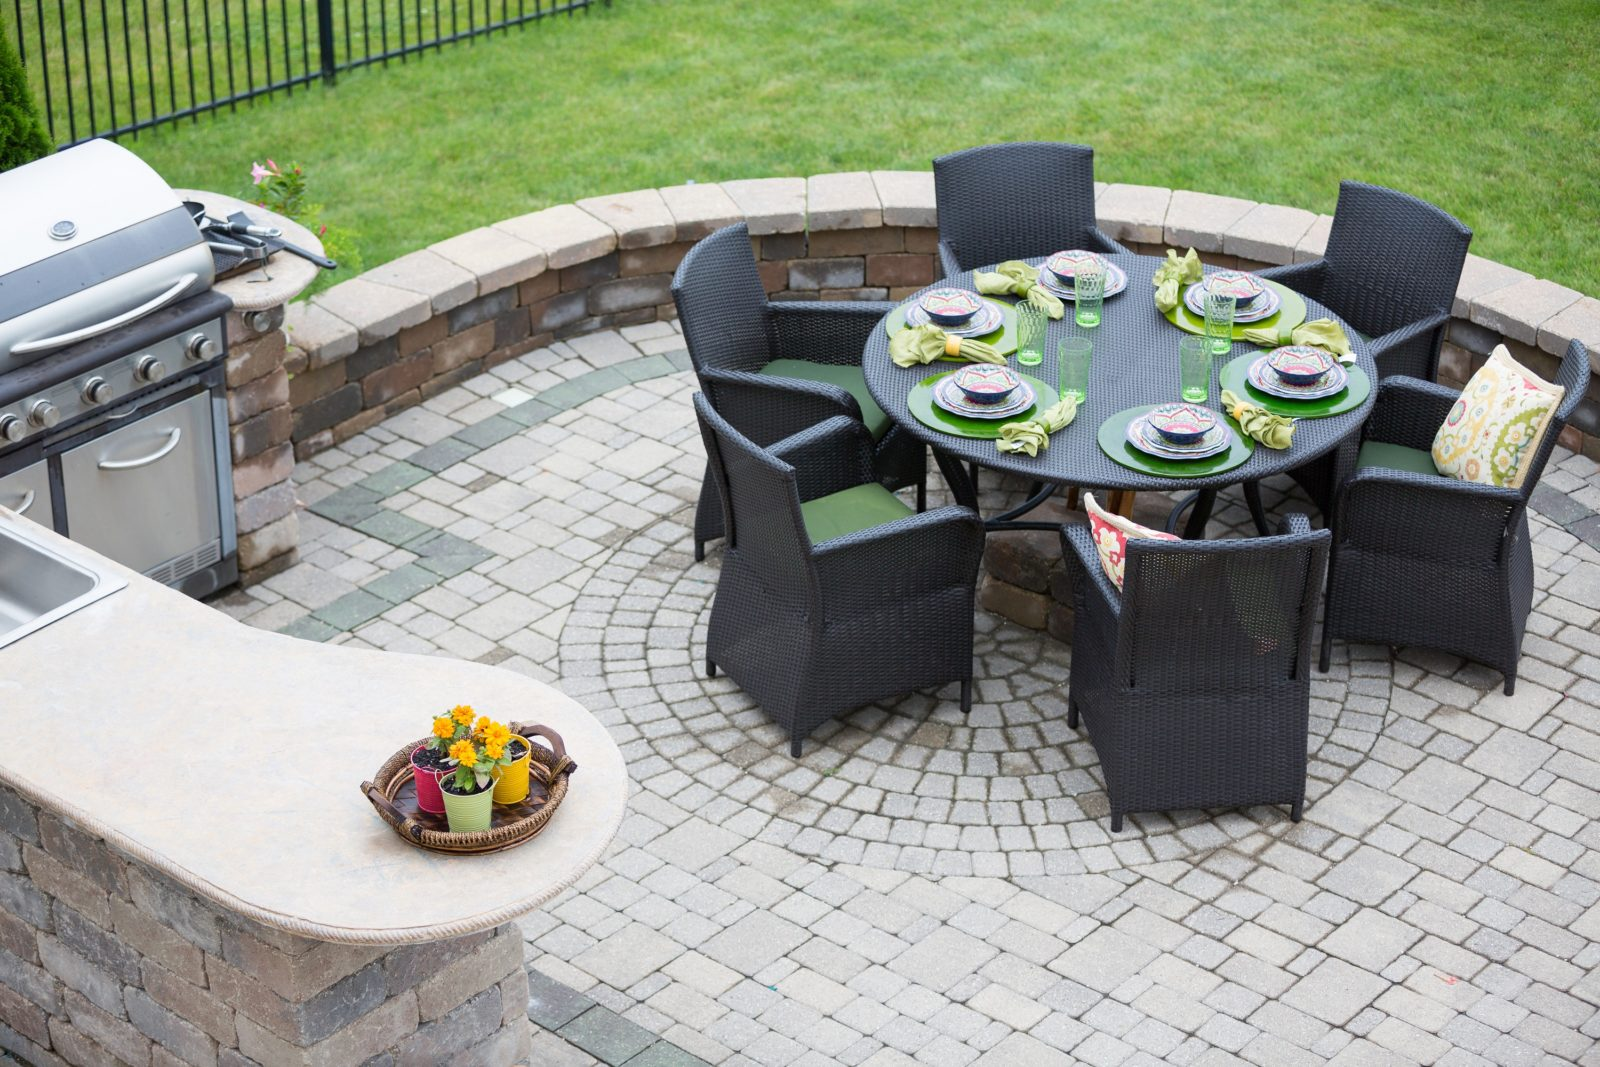 Staging Your Outdoor Living Space - Selling a Home in Lakewood or Long Beach